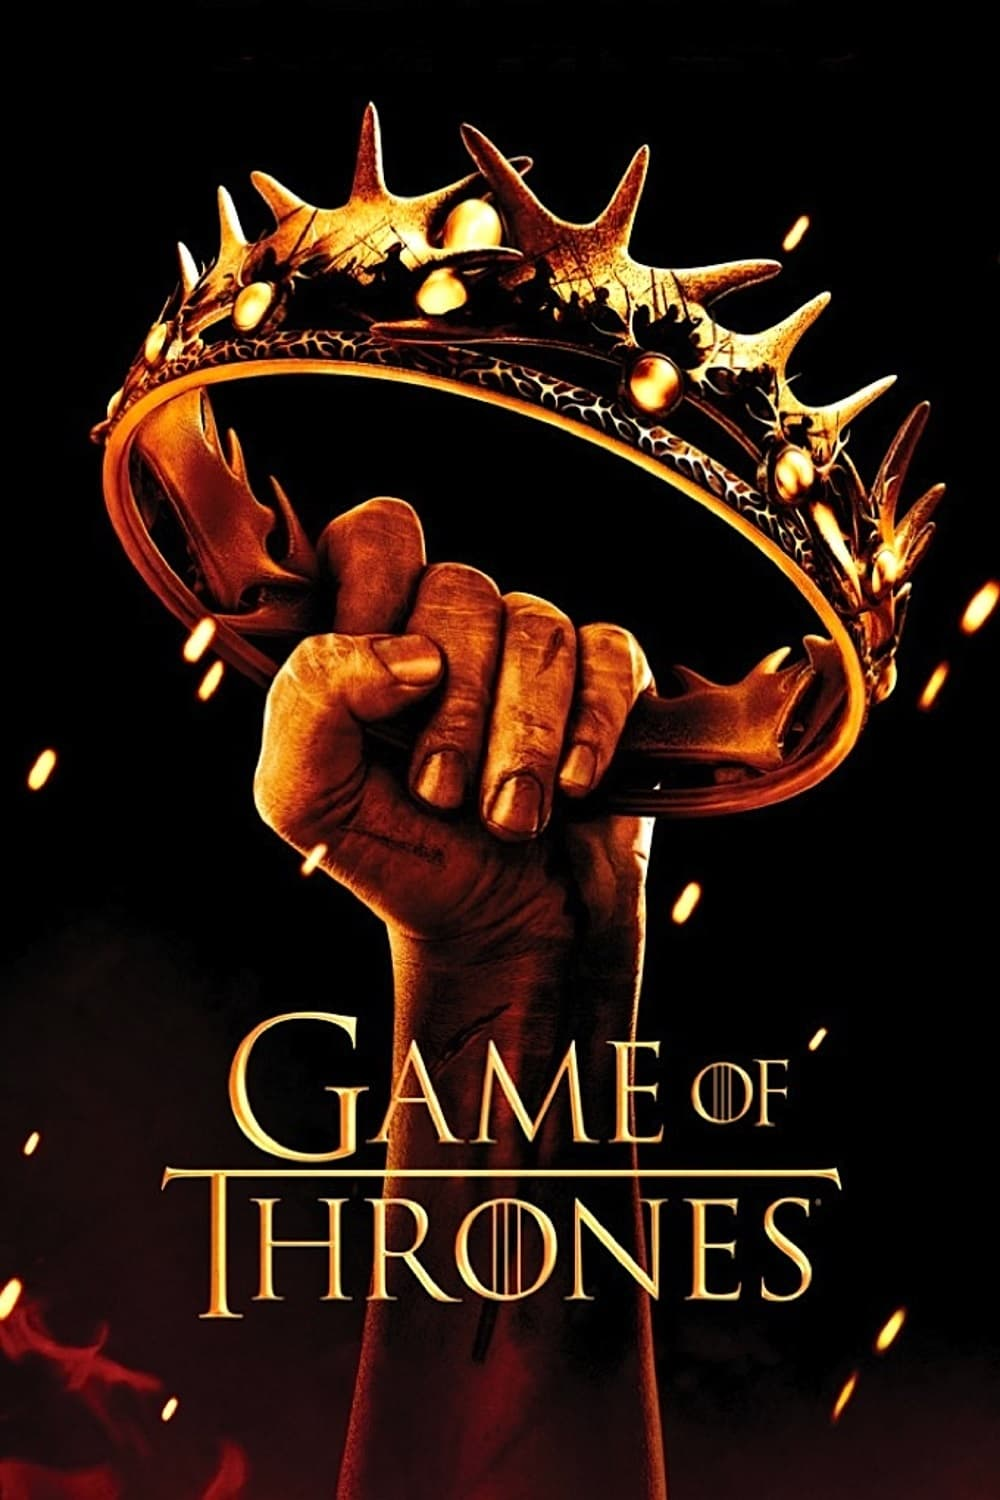 game of throne poster high quality HD printable wallpapers season 1 crown animated